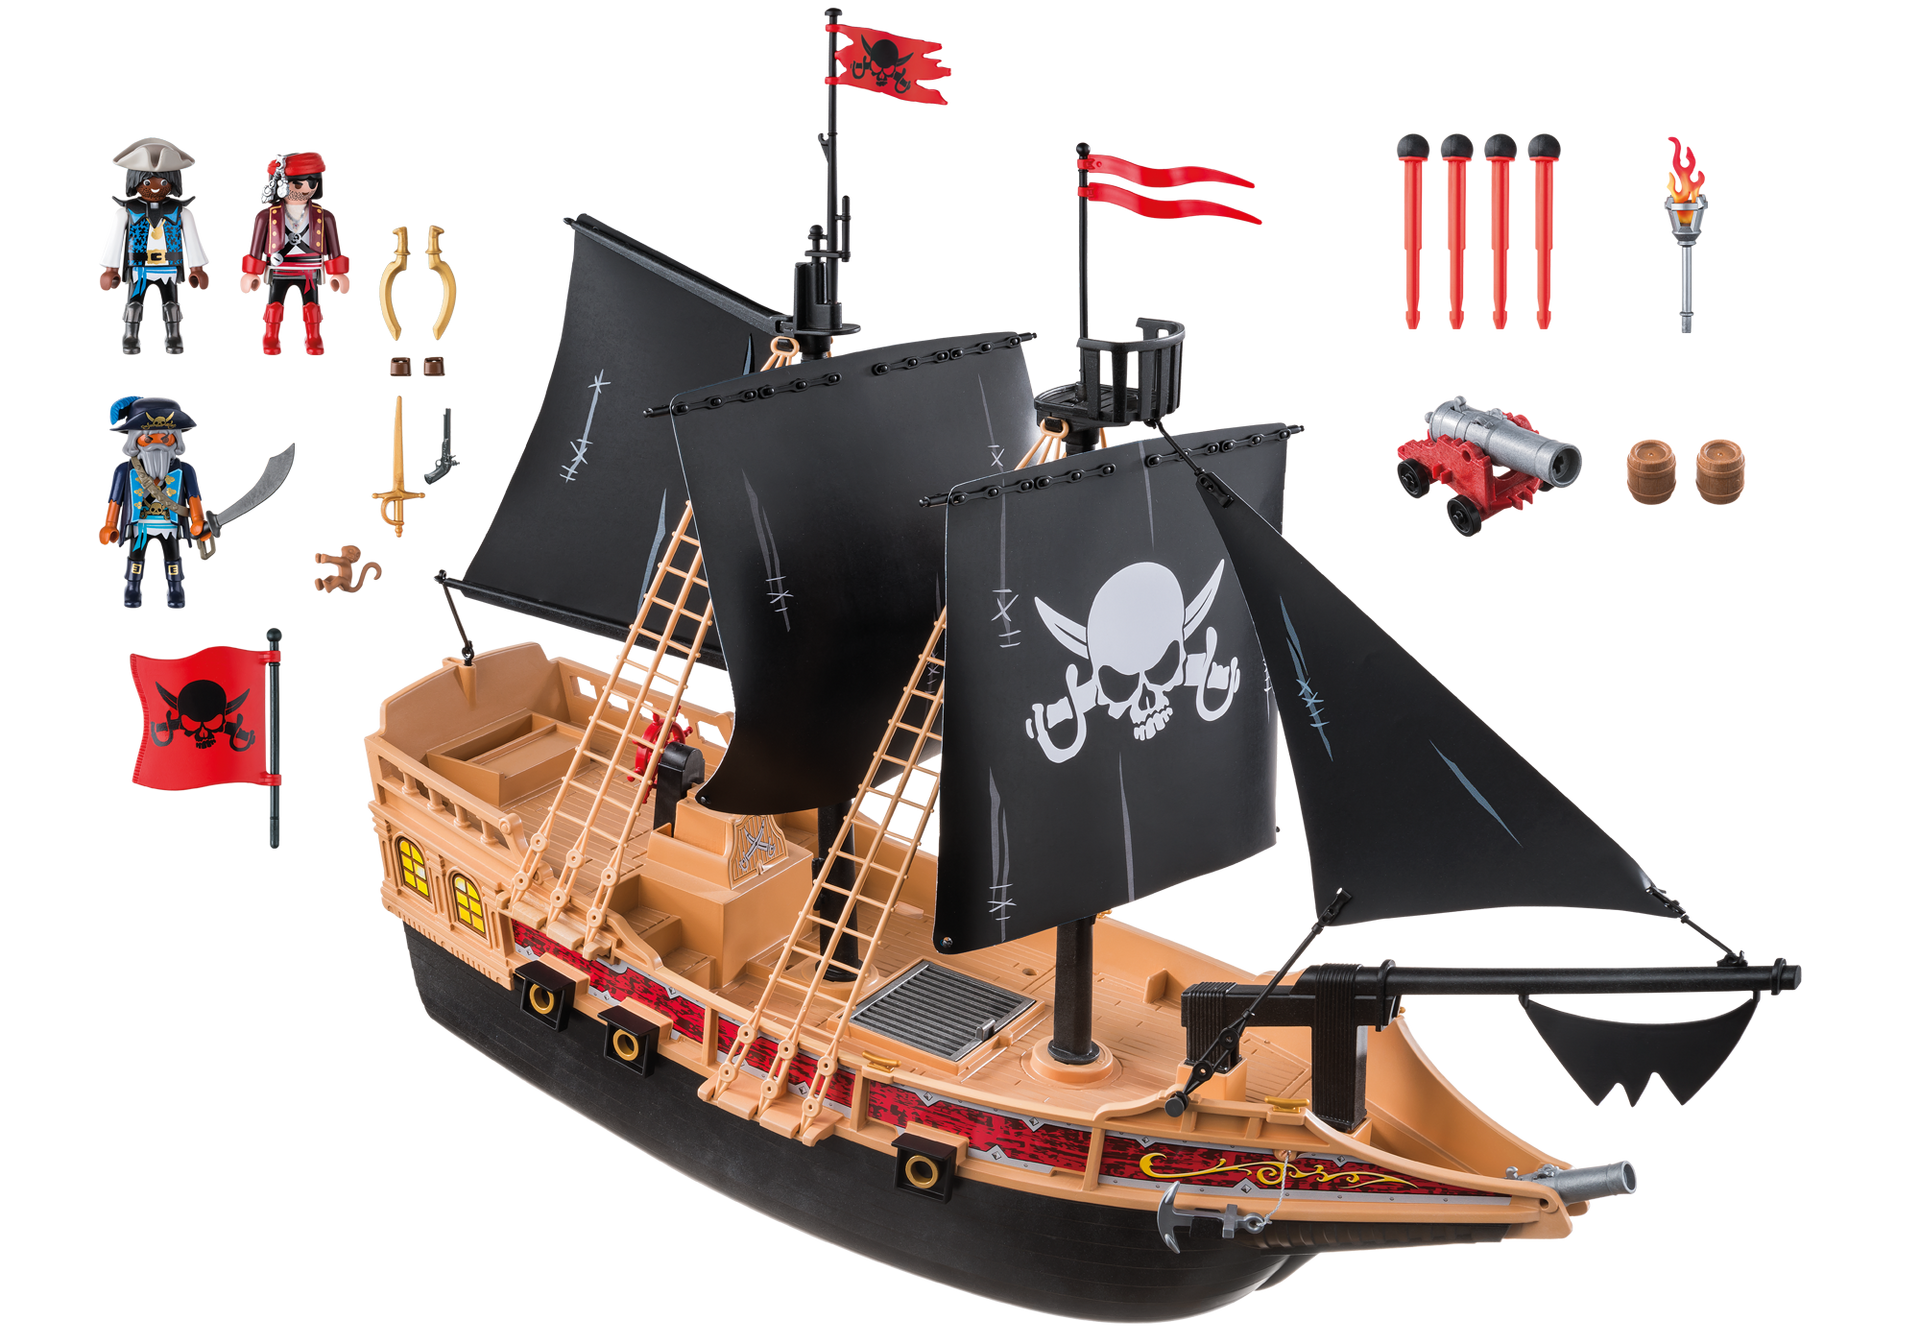 bateau pirates des t n bres 6678 playmobil france. Black Bedroom Furniture Sets. Home Design Ideas